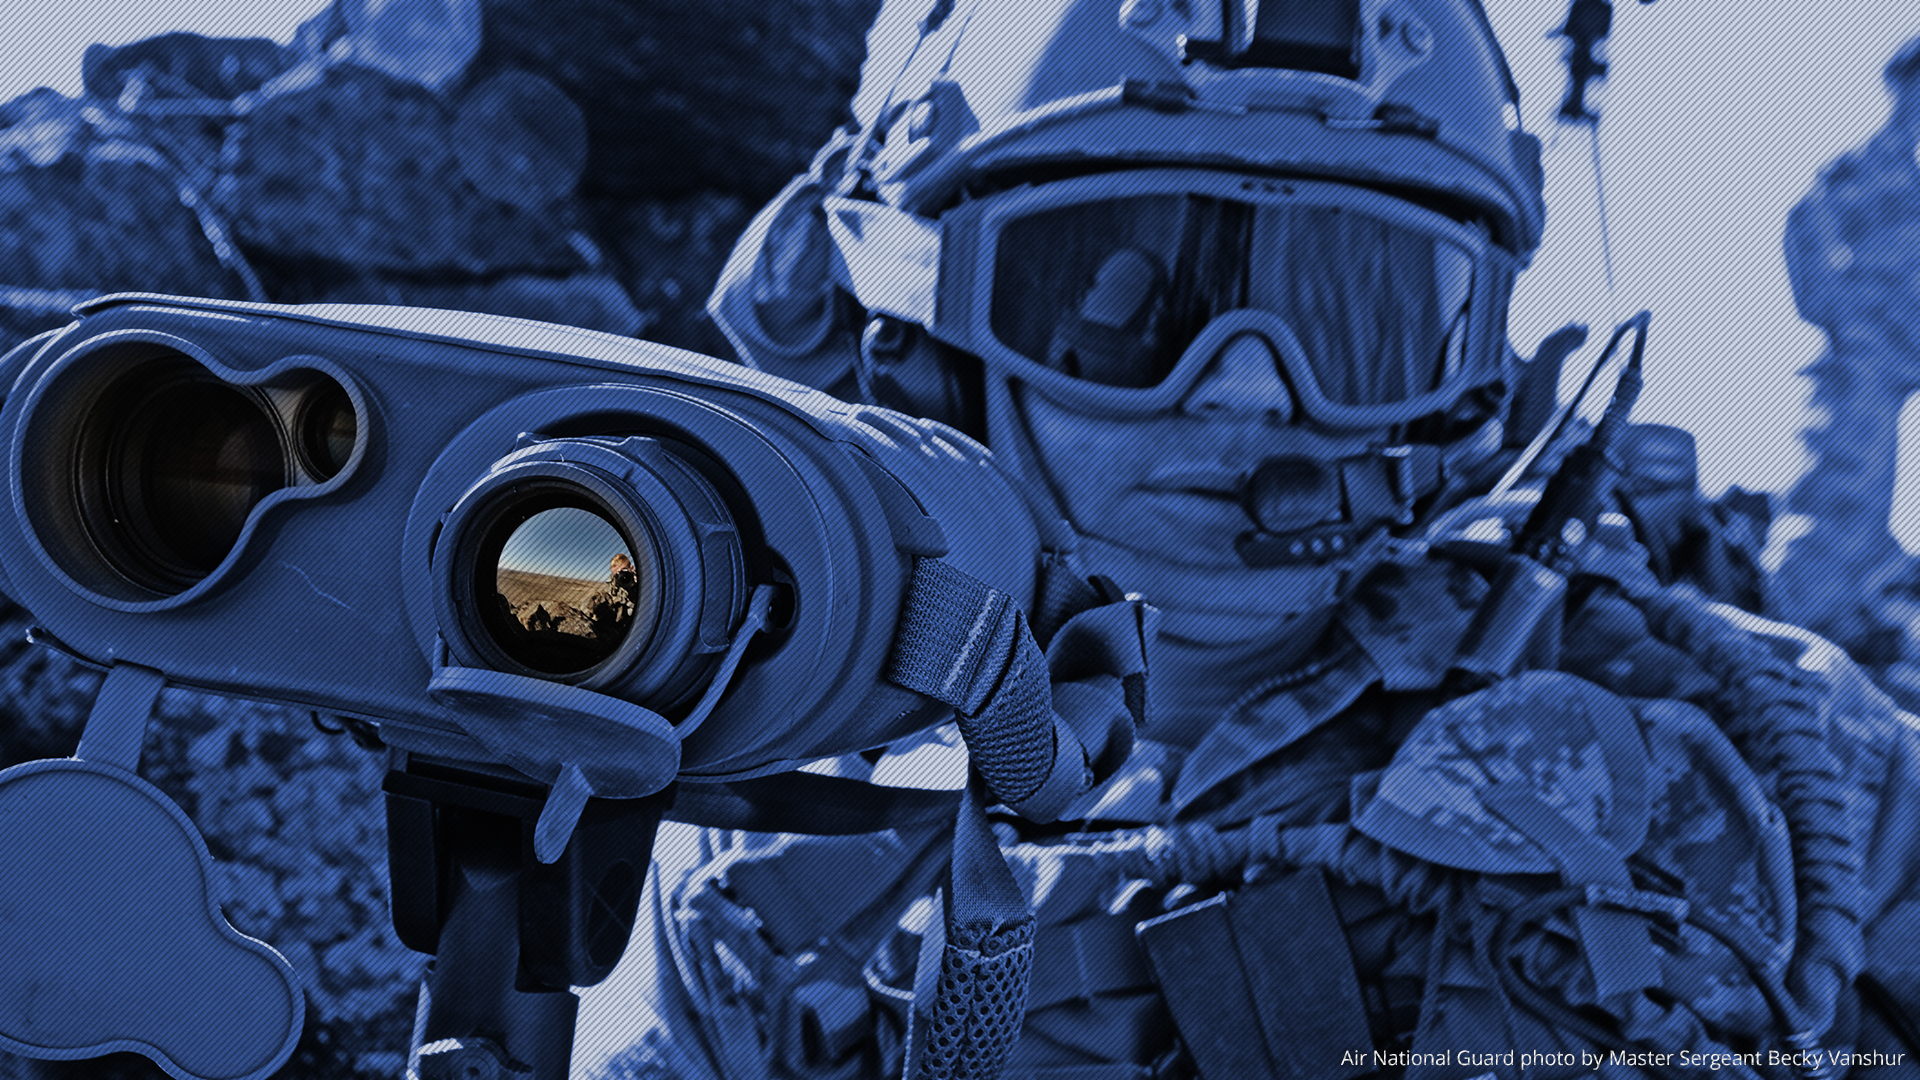 ENHANCING OBSERVATION & TARGETING CAPABILITIES